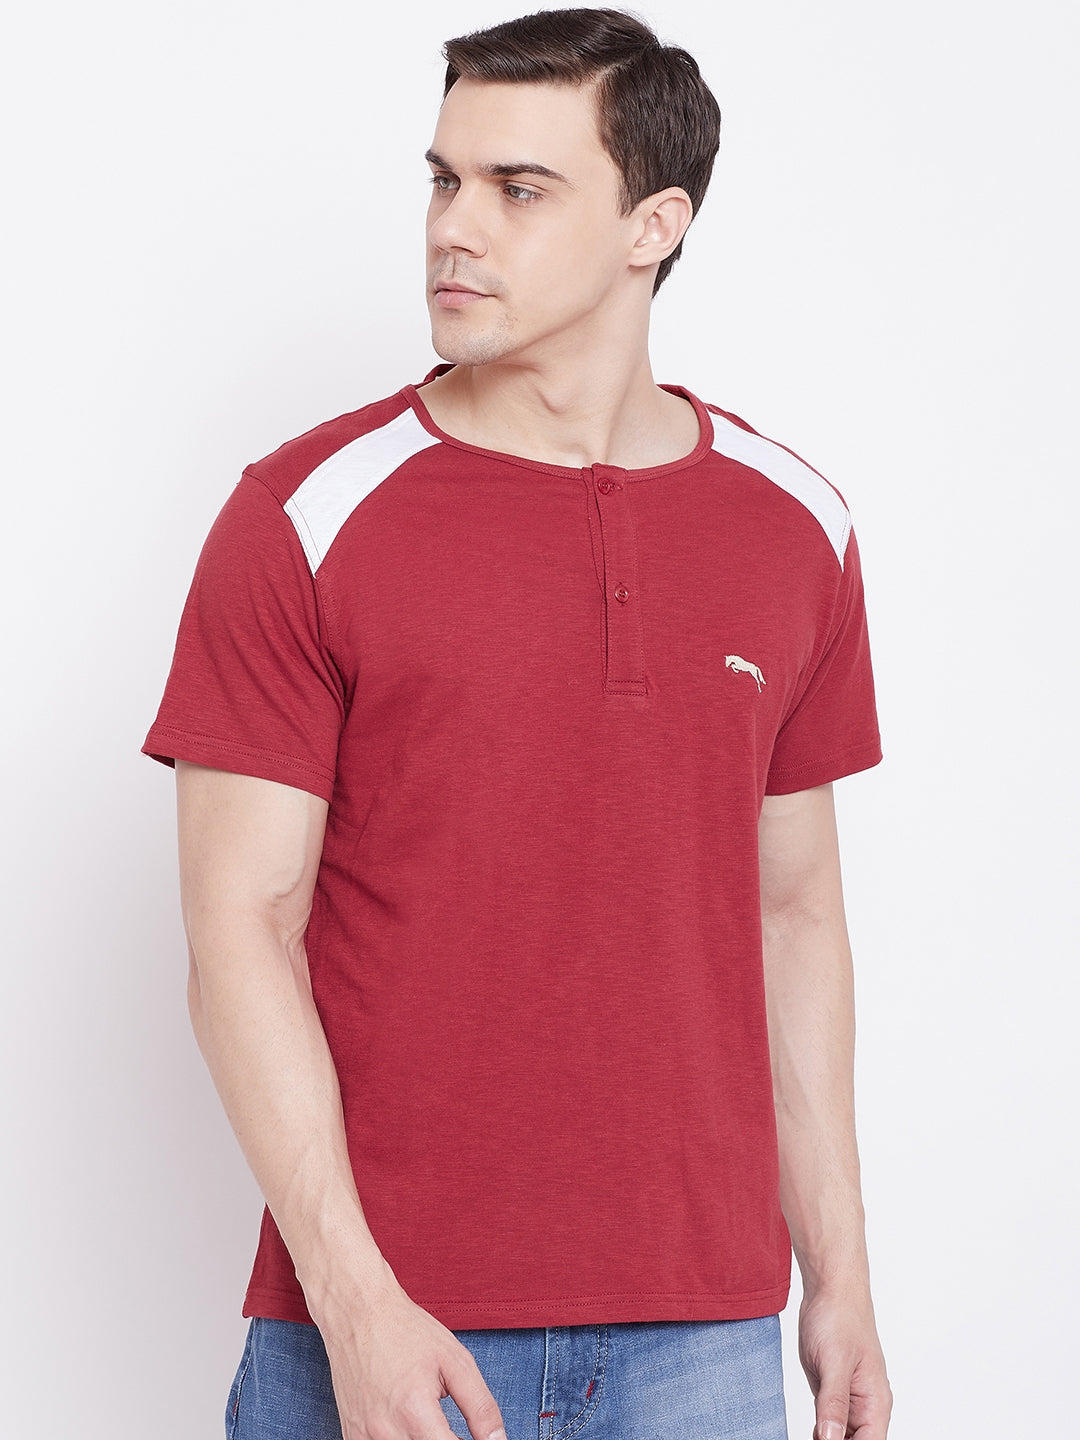 JUMP USA Men Red Solid Round Neck T-shirt